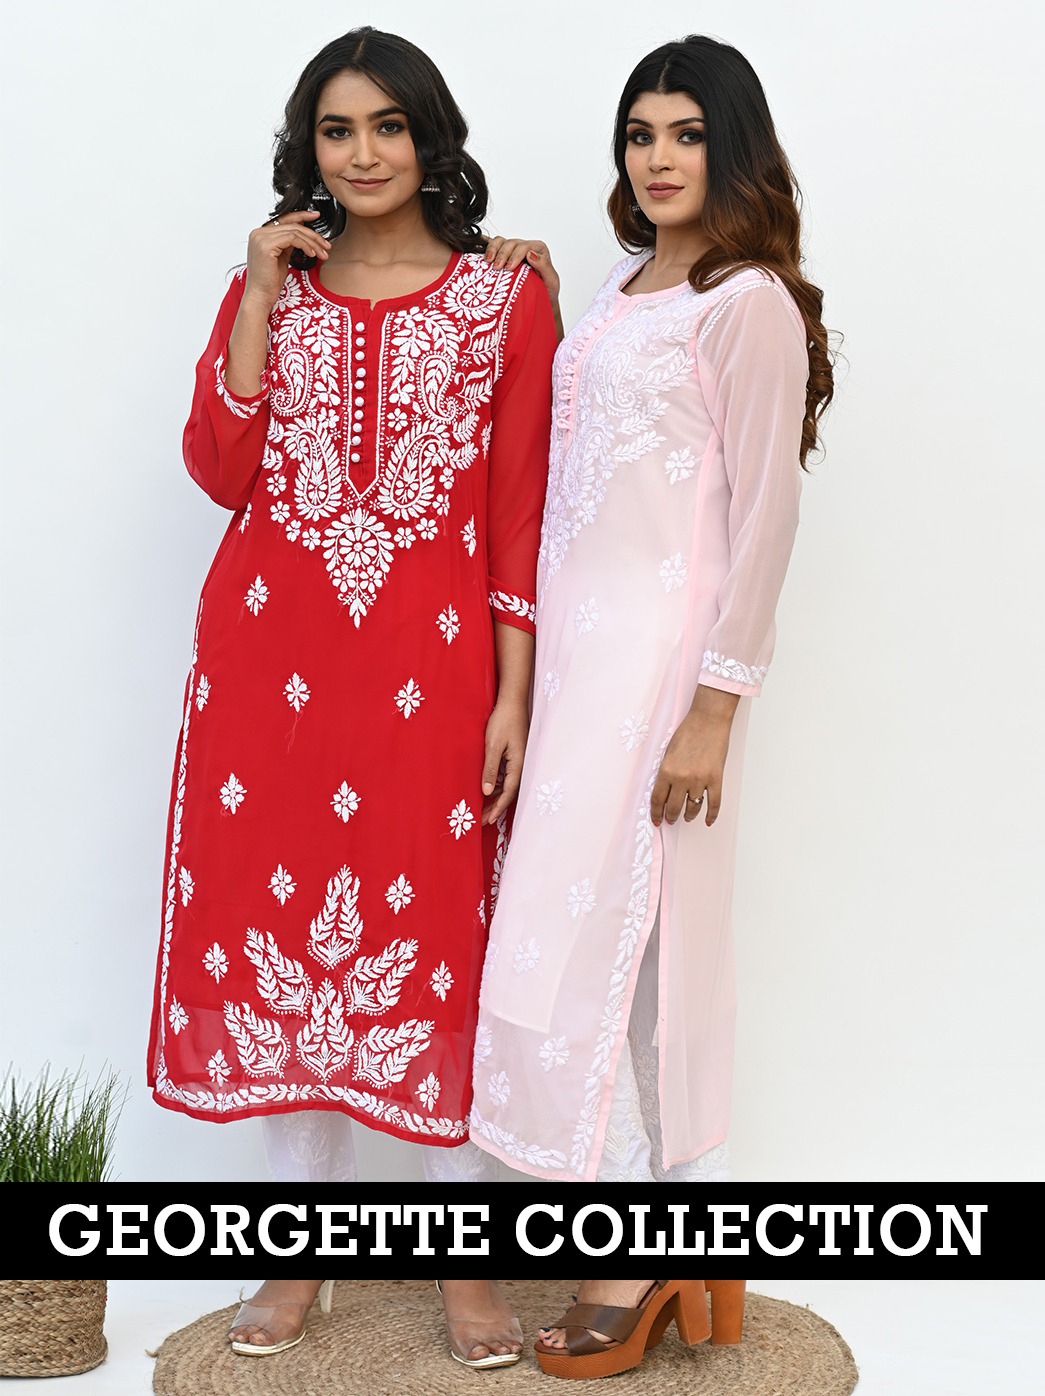 GEORGETTE COLLECTION